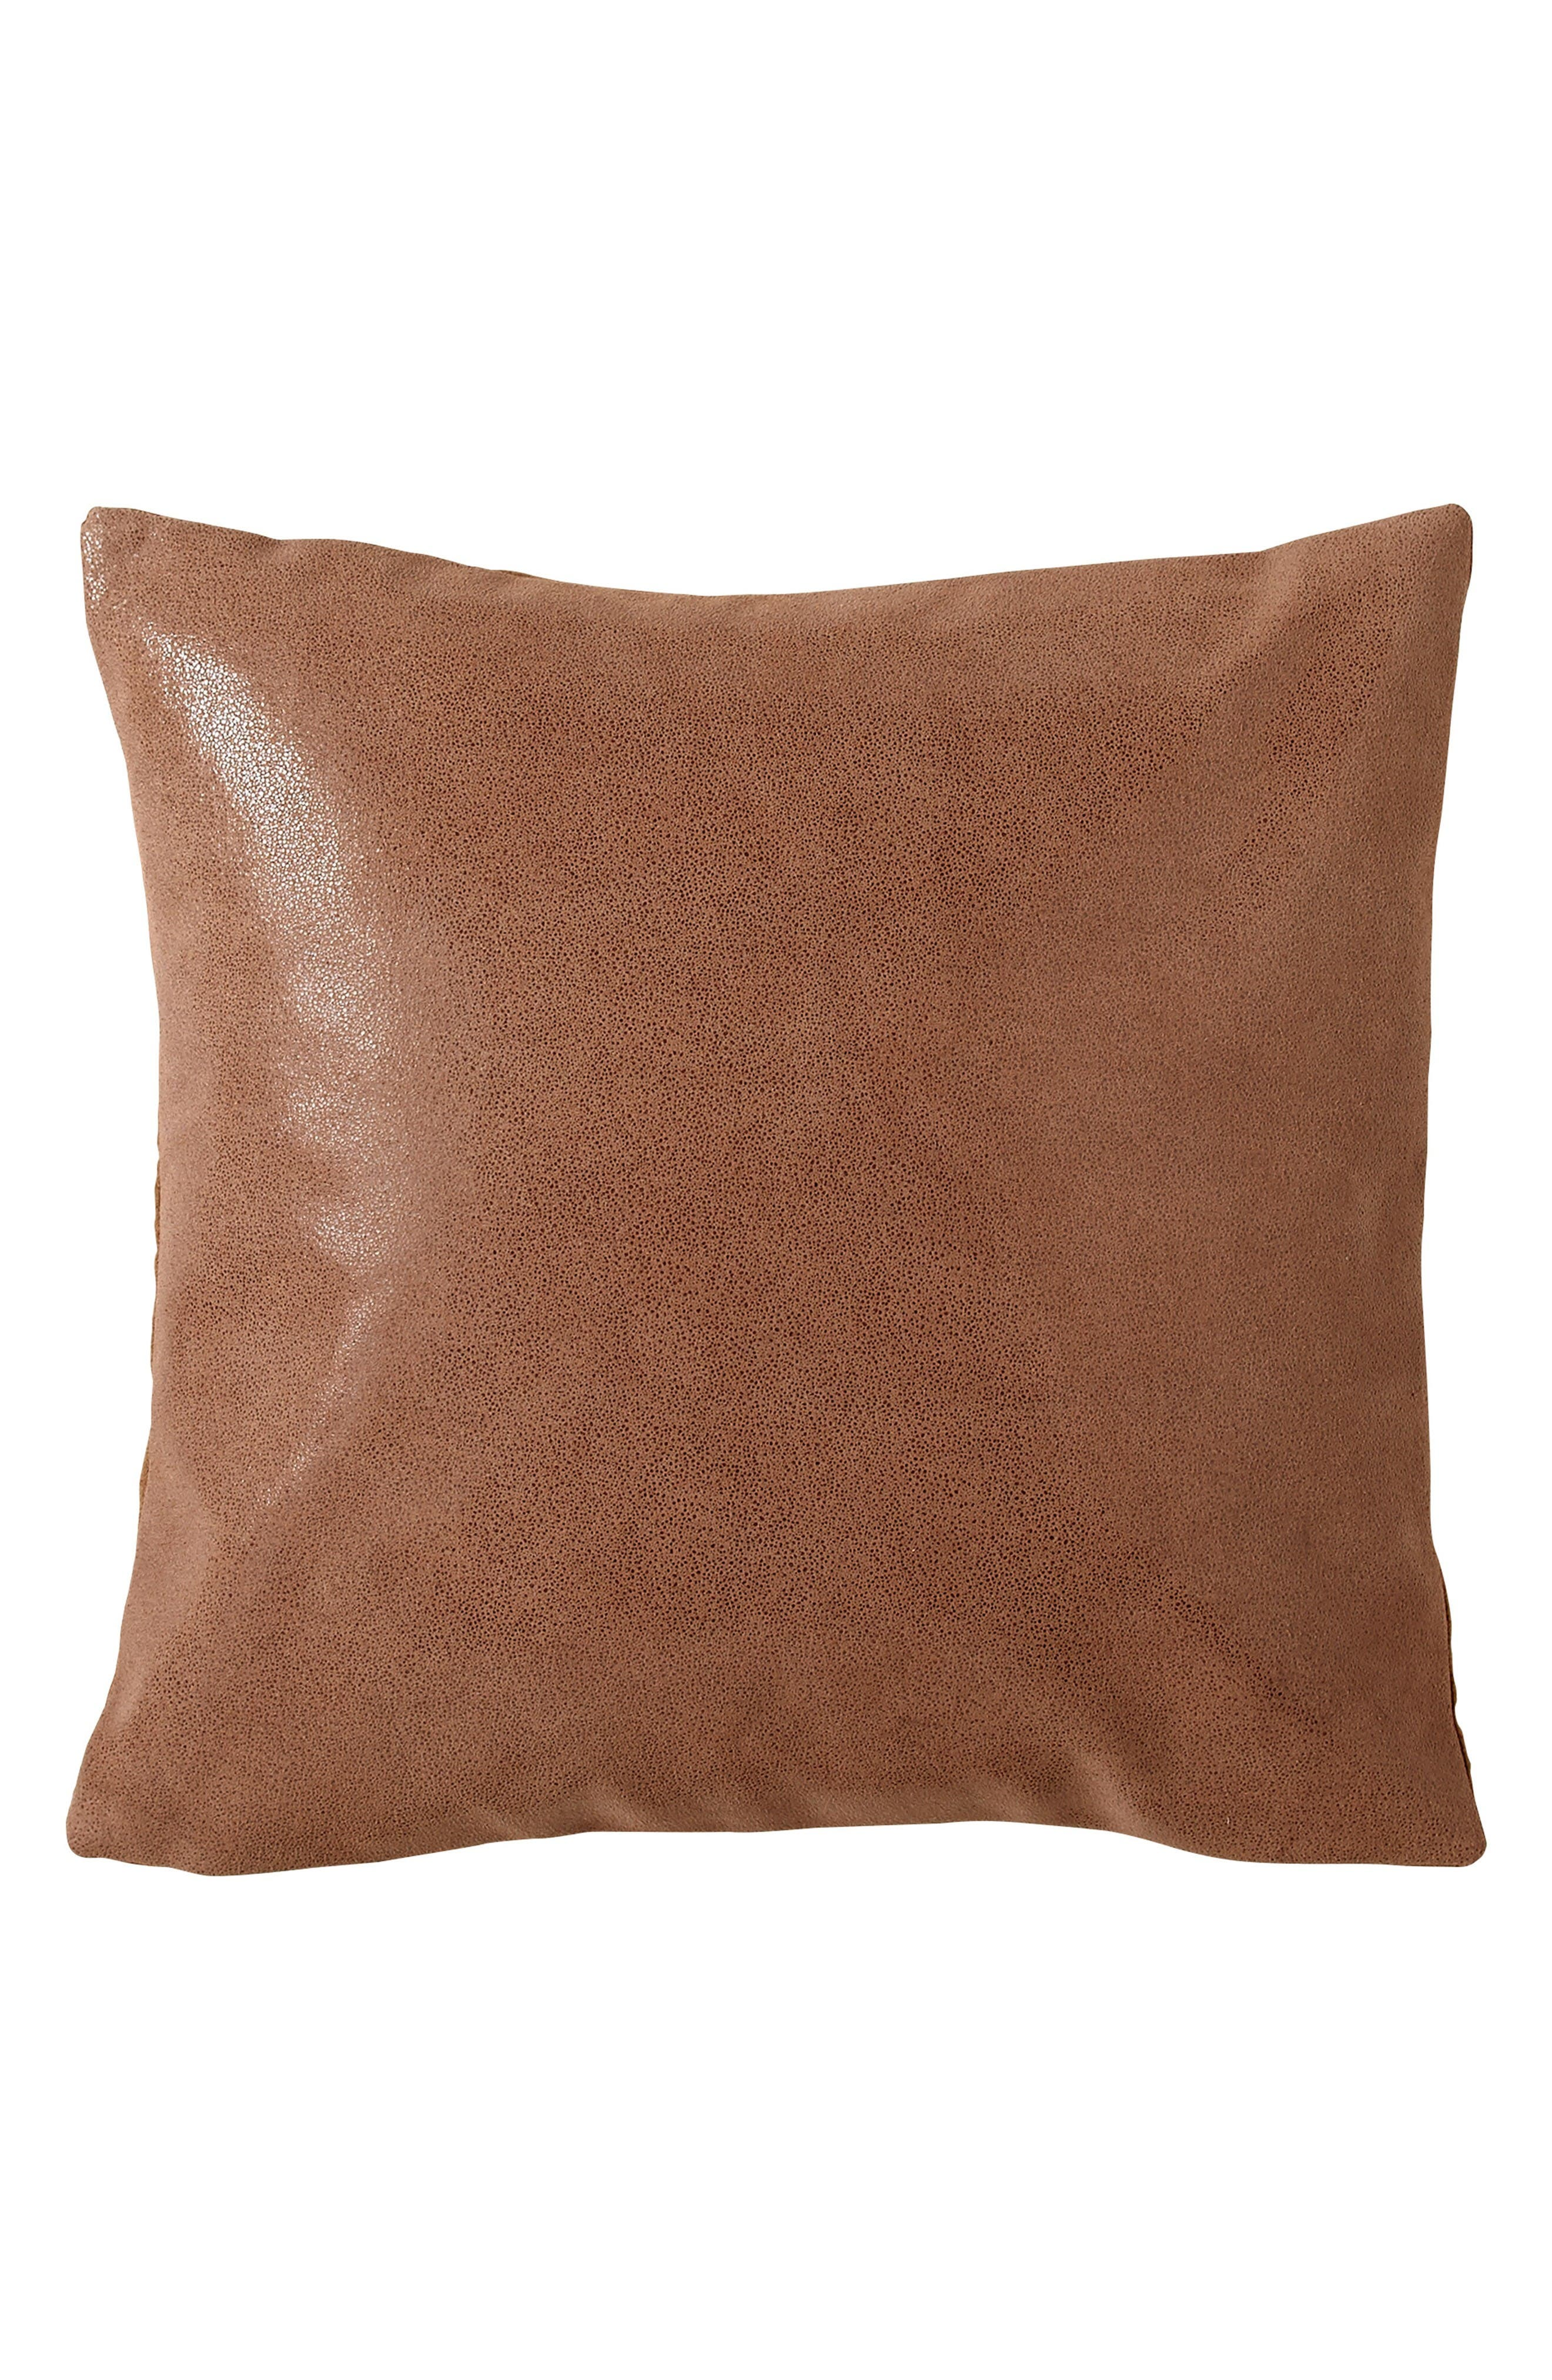 Main Image - Donna Karan New York Theory Leather Accent Pillow